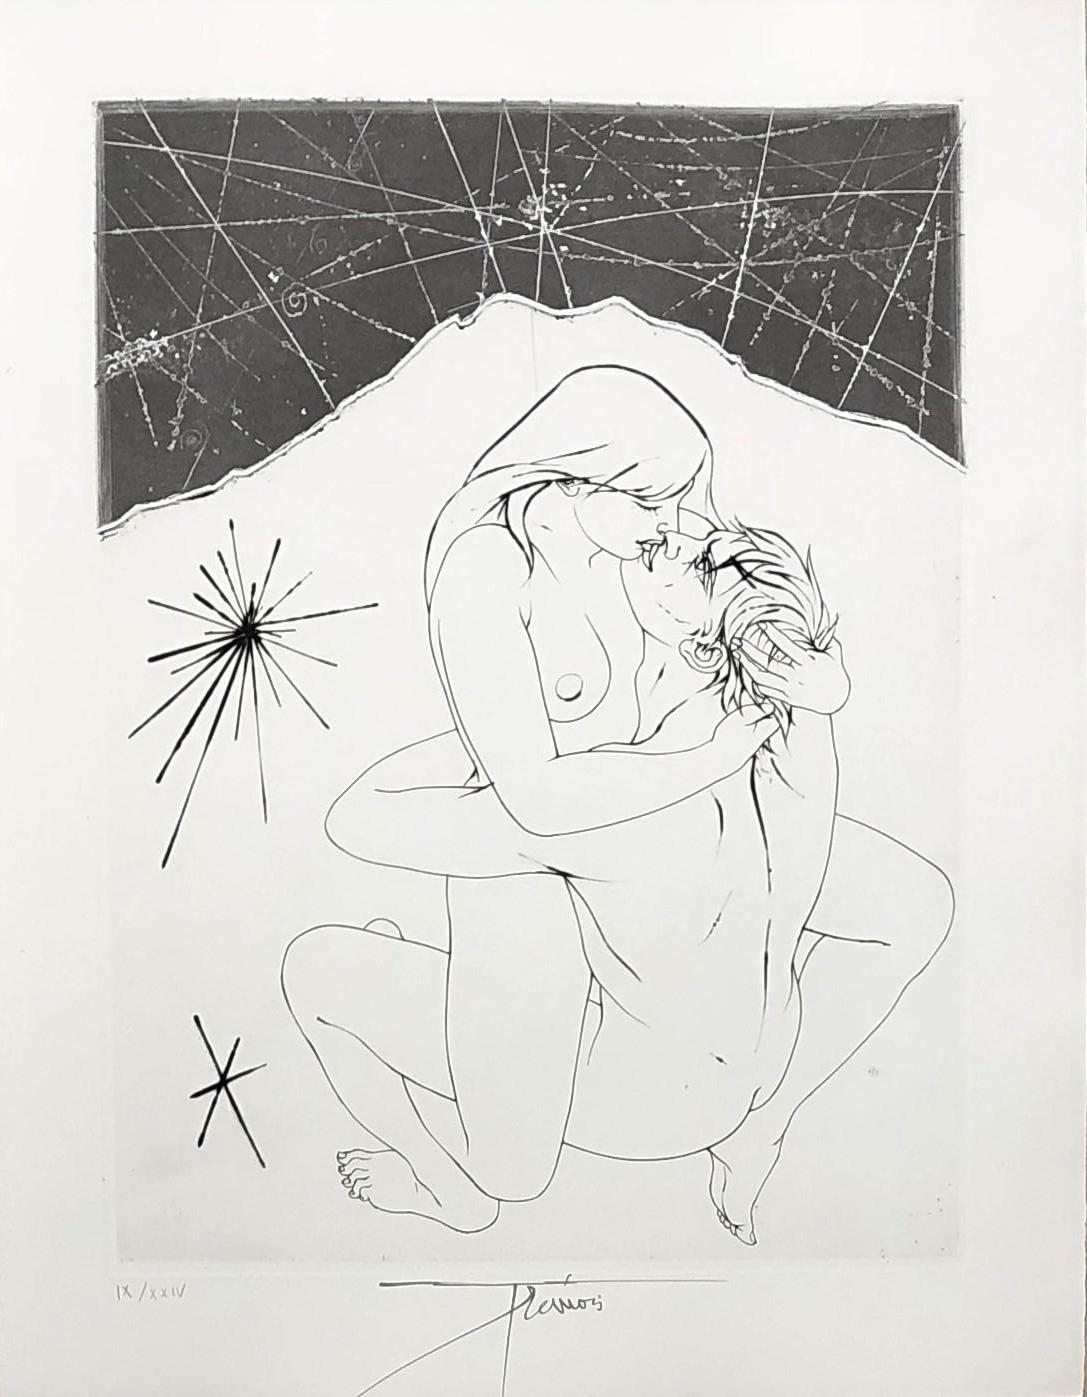 Beautiful Woman on a Man - Original etching handsigned and numbered